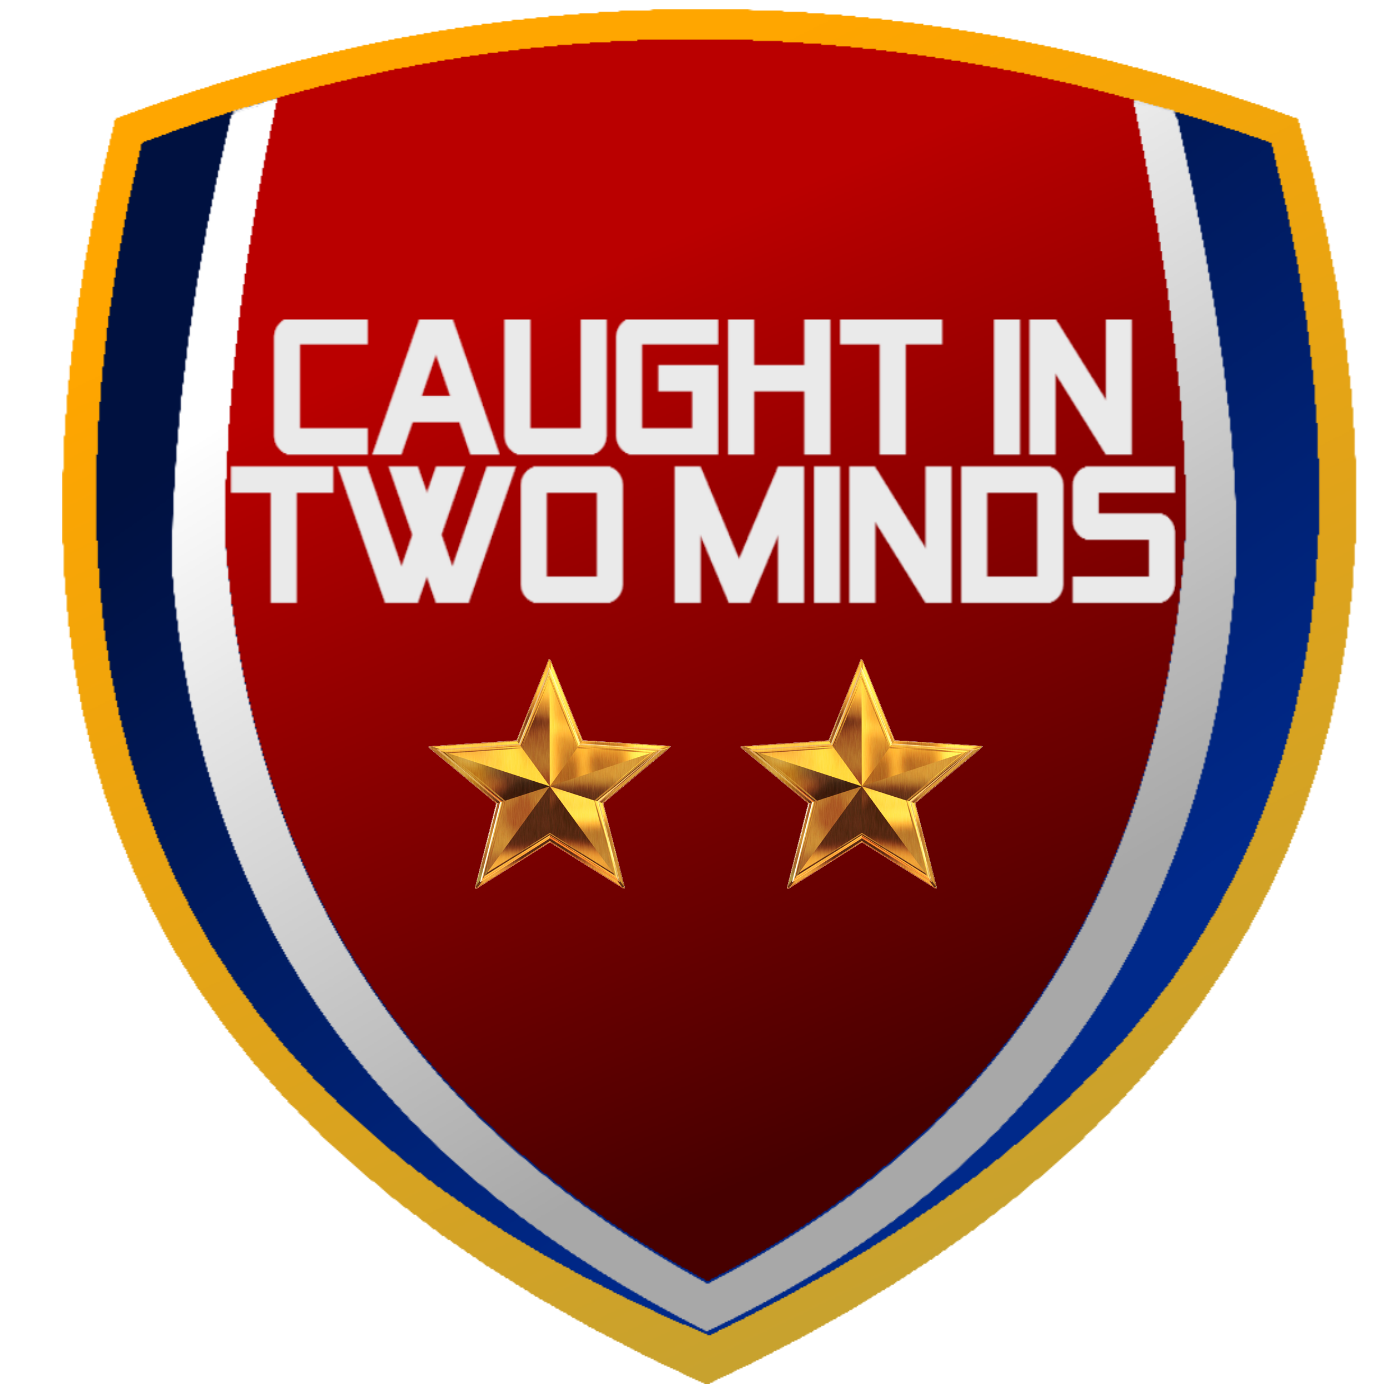 12 - Caught In Two Minds